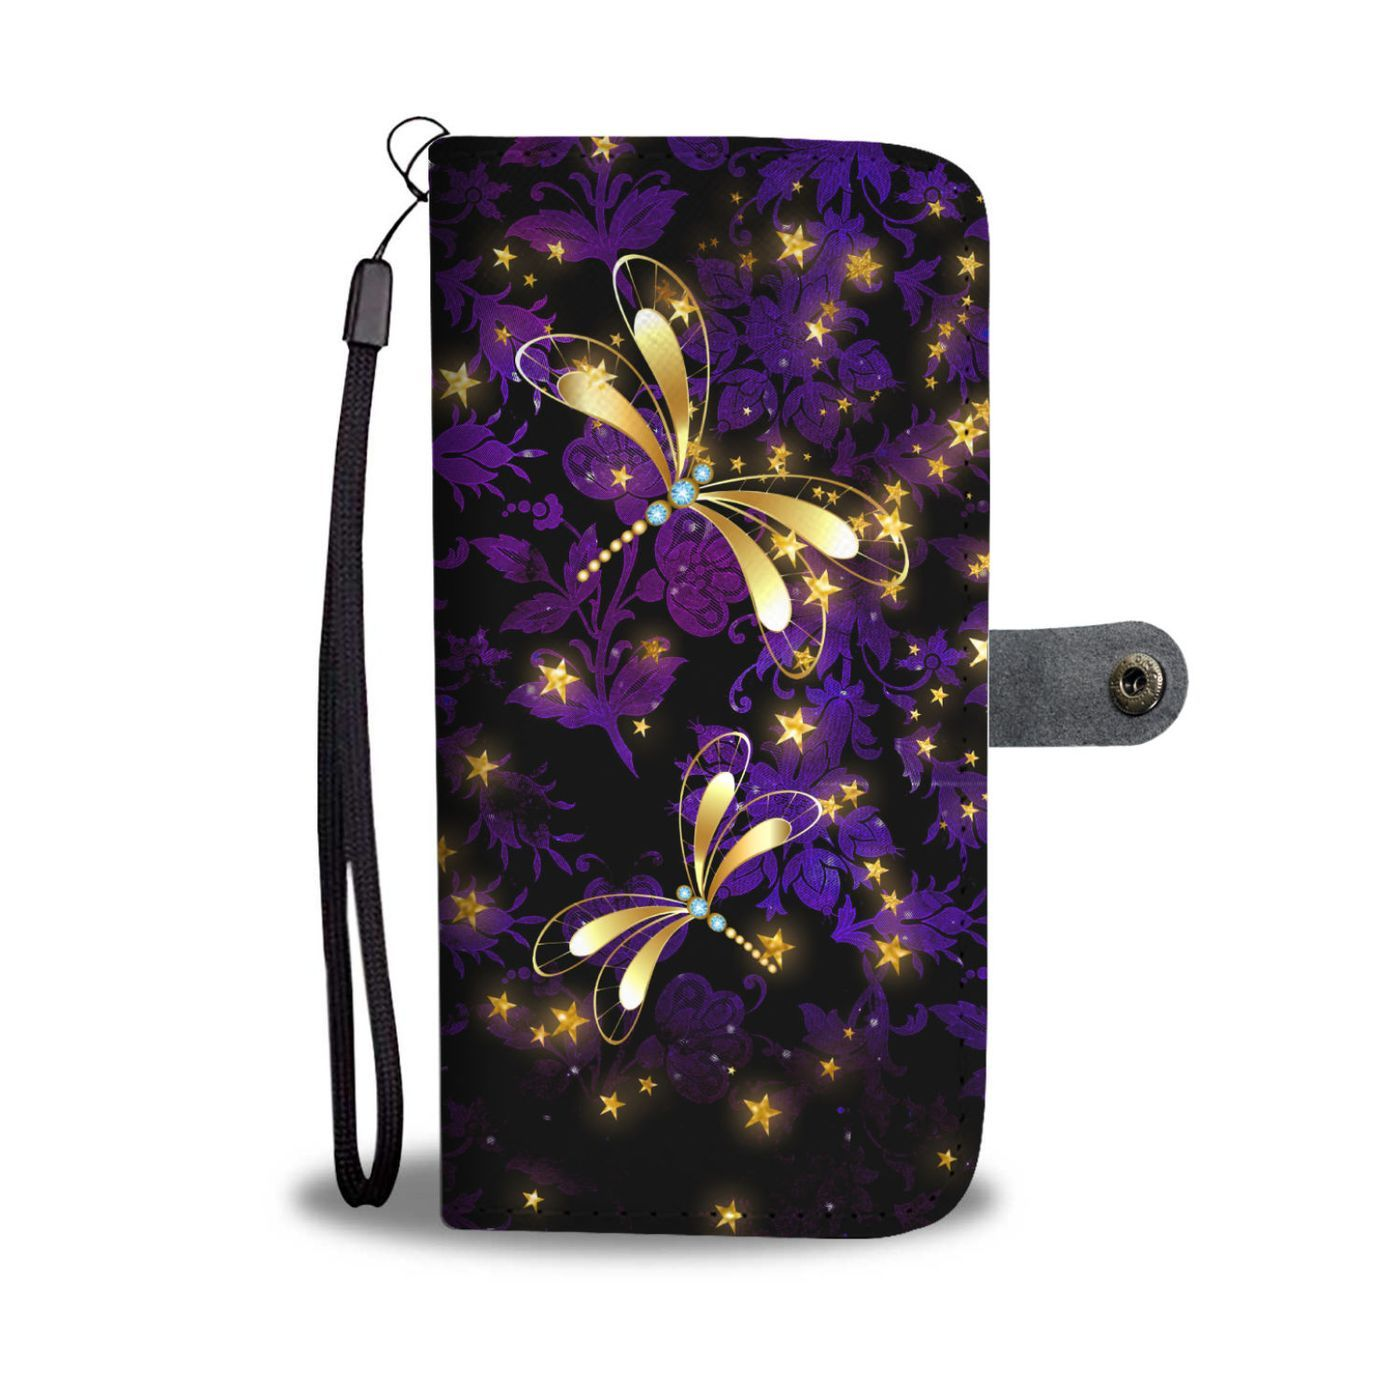 Damask dragonflies wallet cell phone case boasting vibrant colors and incredible detailing features anti-skimming RFID technology. Secure cell phone case, marble cell phone case, marble cell phone wallet, RFID Samsung Galaxy iPhone Google Pixel LG cell phone cases and wallets by Designing on Wine.  #designingonwine #butterfly #butterflies #butterflycellcase #iphonecase #samsungcase #cellphonecase #cellcase #customphonecase #customcellcase #damaskcellphone #damaskphonecase #damask…